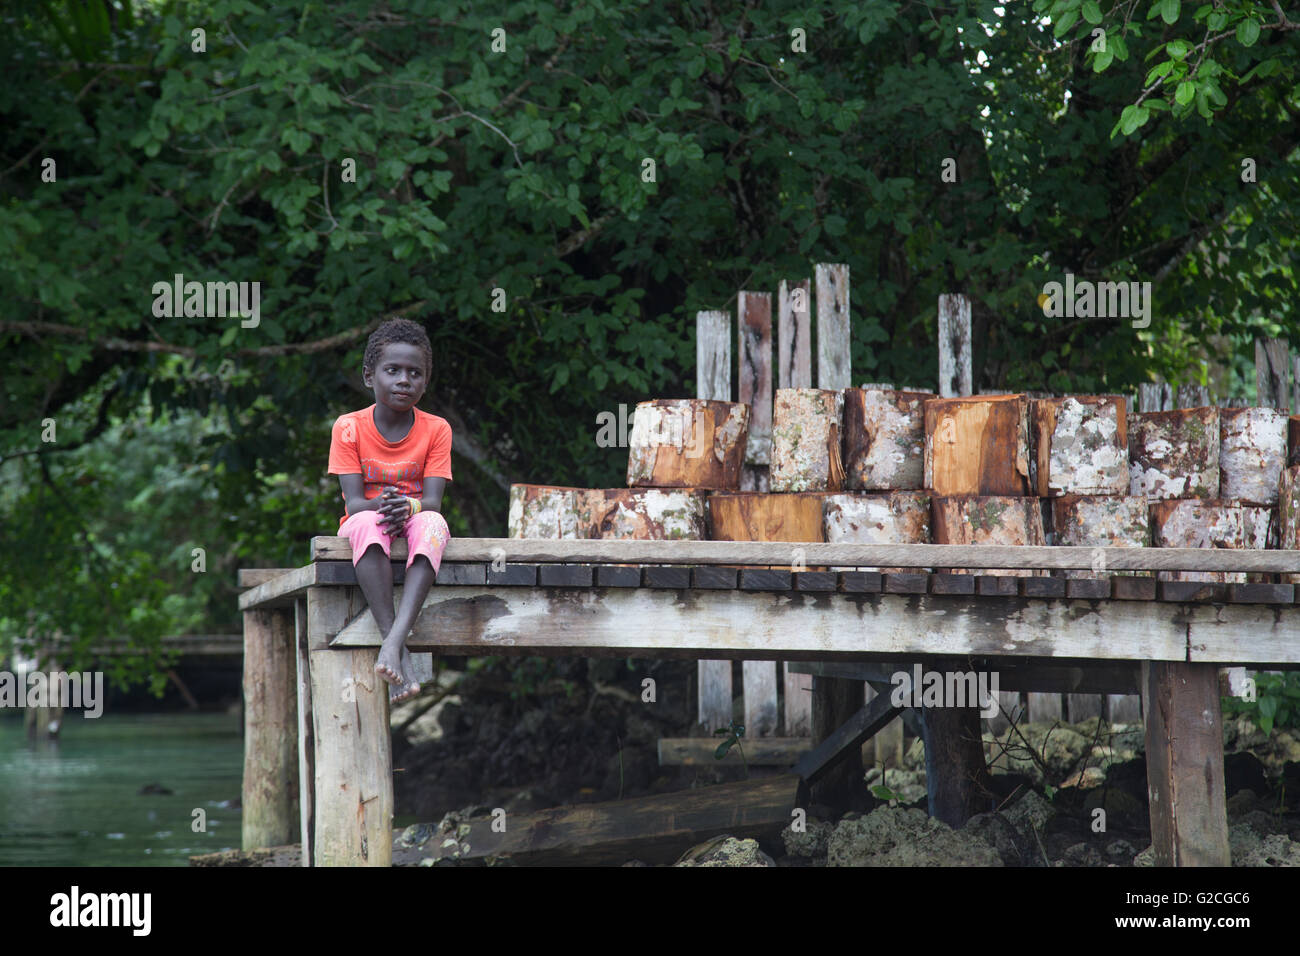 Seghe, Solomon Islands - June 16, 2015: Local boy sitting on a pier - Stock Image